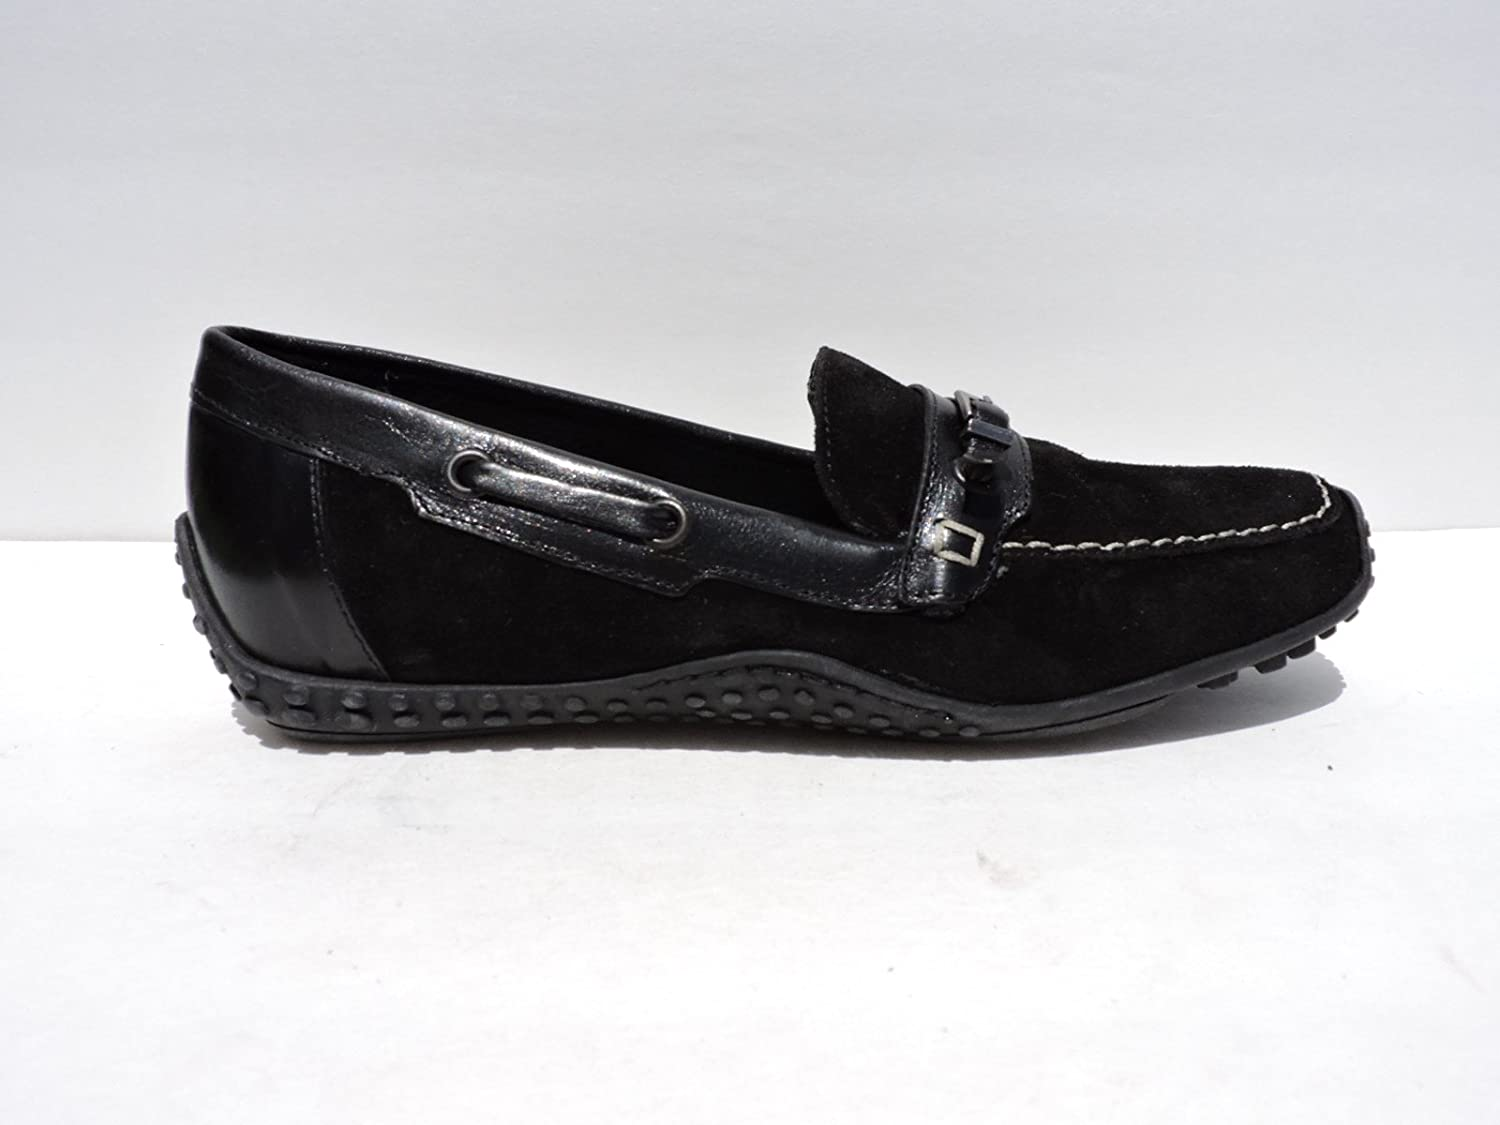 Sesto Meucci Womens Alcyon Black Suede Loafers Flats Slip-ons Size 5.5 M